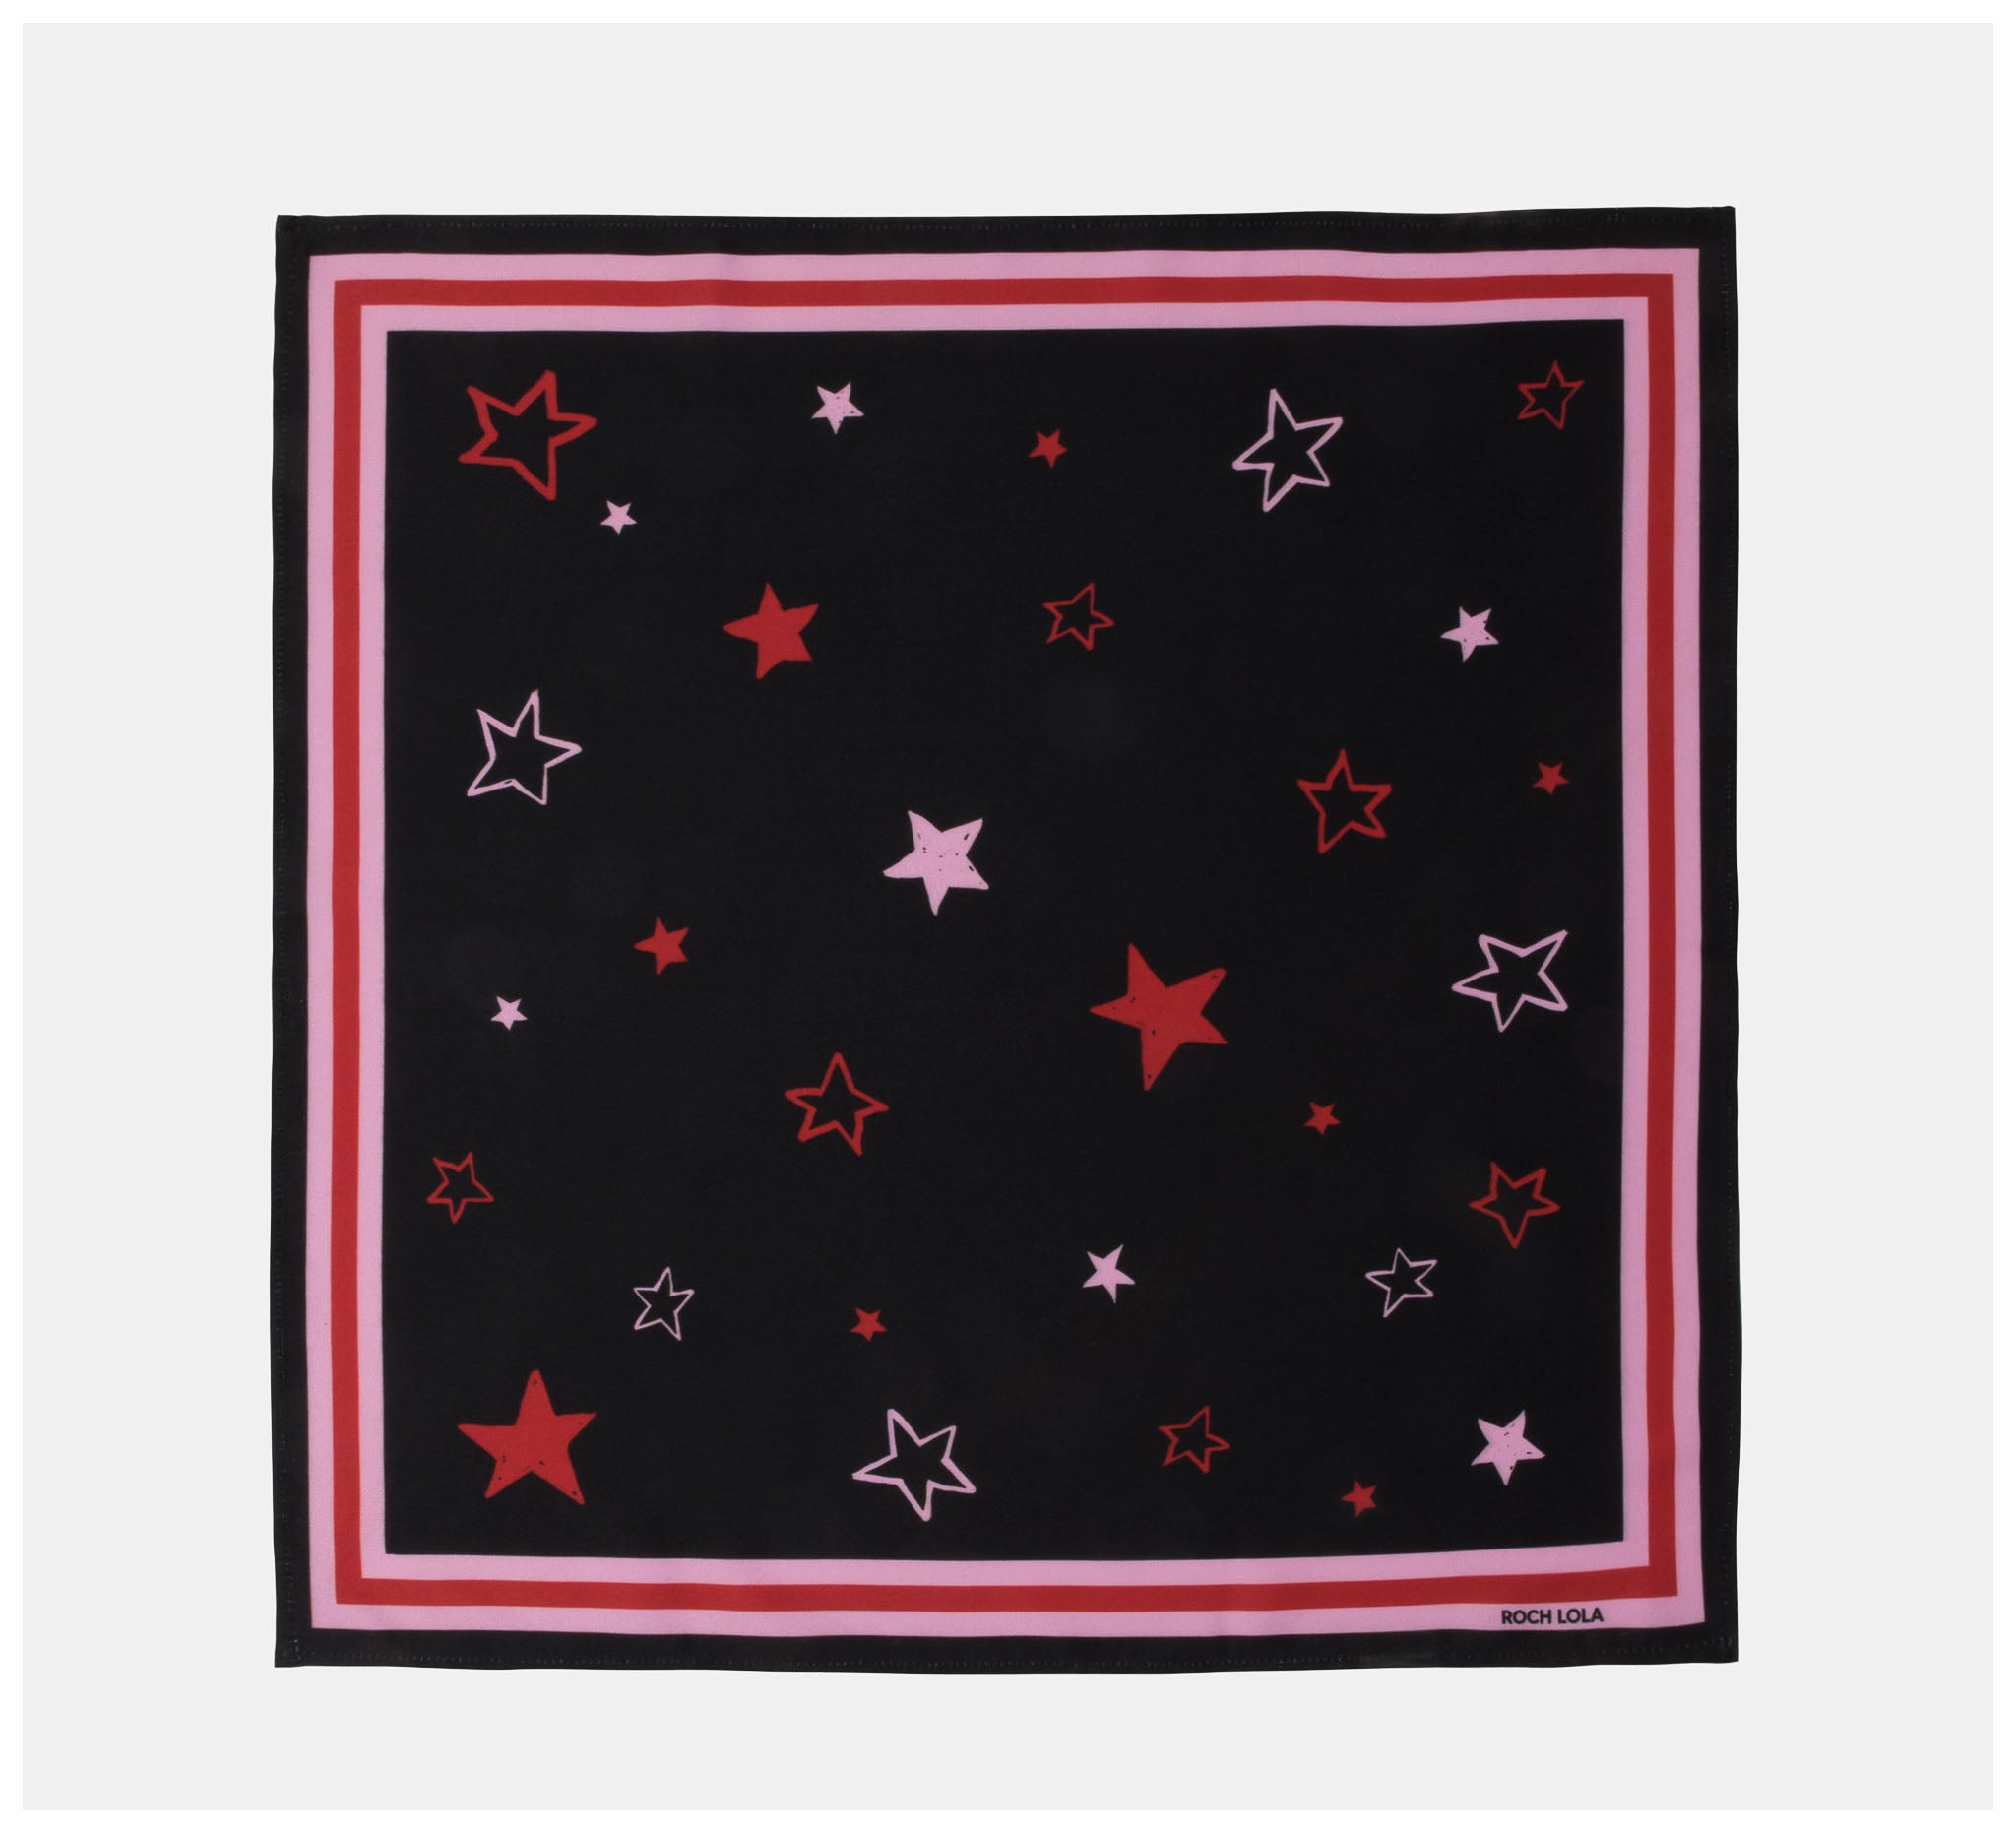 Roch Lola - The Scarf - Stars - Black/pink/red